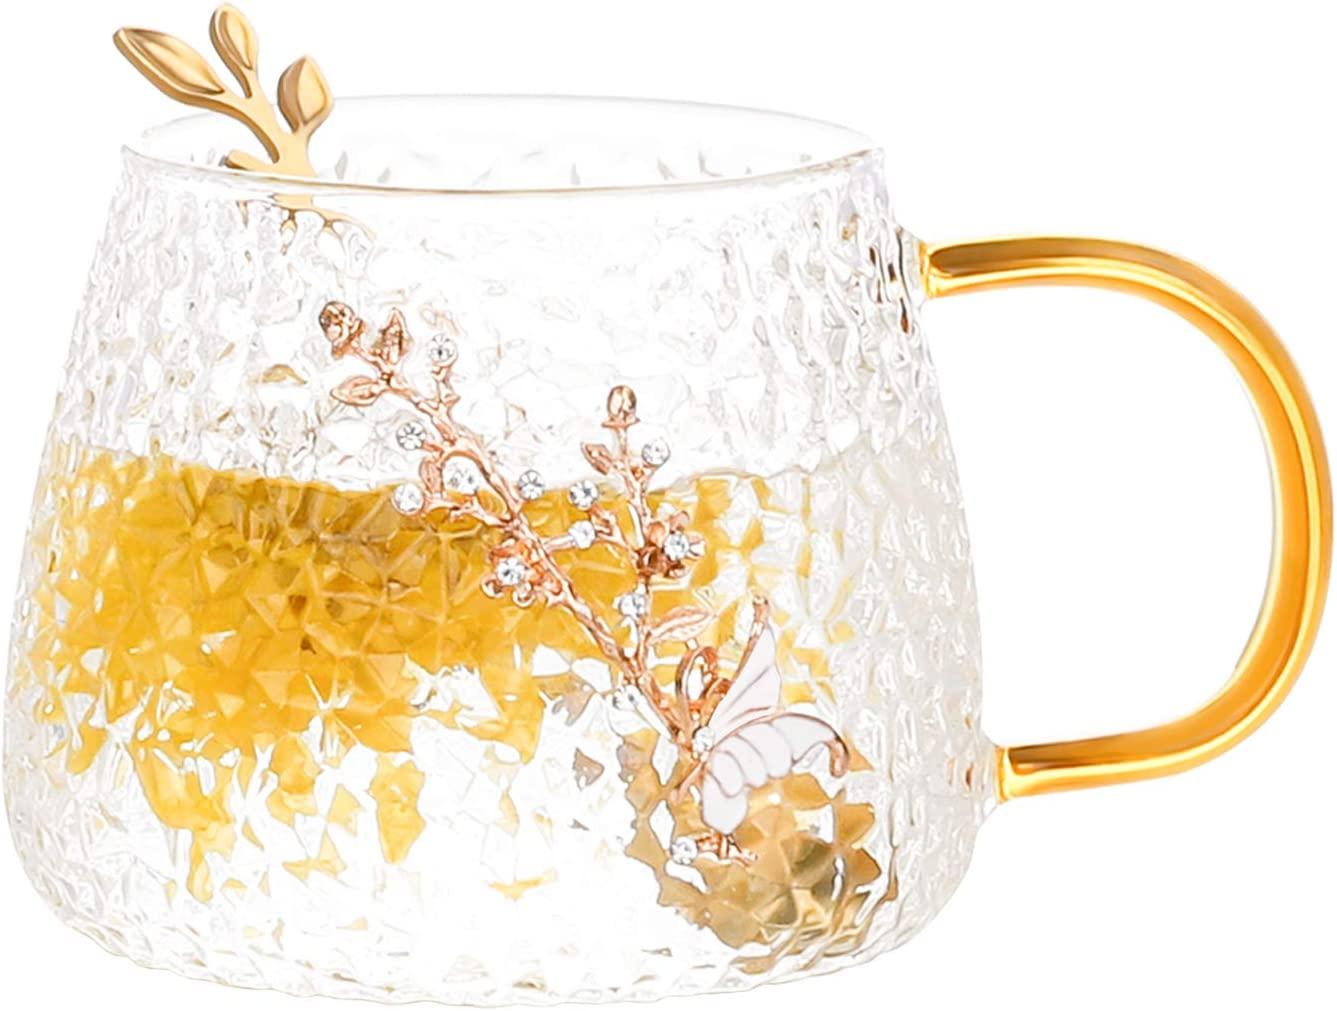 COAWG Glass Tea Cup Coffee Mug, 11OZ -Japanese Classical Flower Clear Cup with Spoon, Unique Enamel Handmade Personalized Birthday Present Ideas for Women Grandma Mom Teachers Hot Beverages ( 11oz)